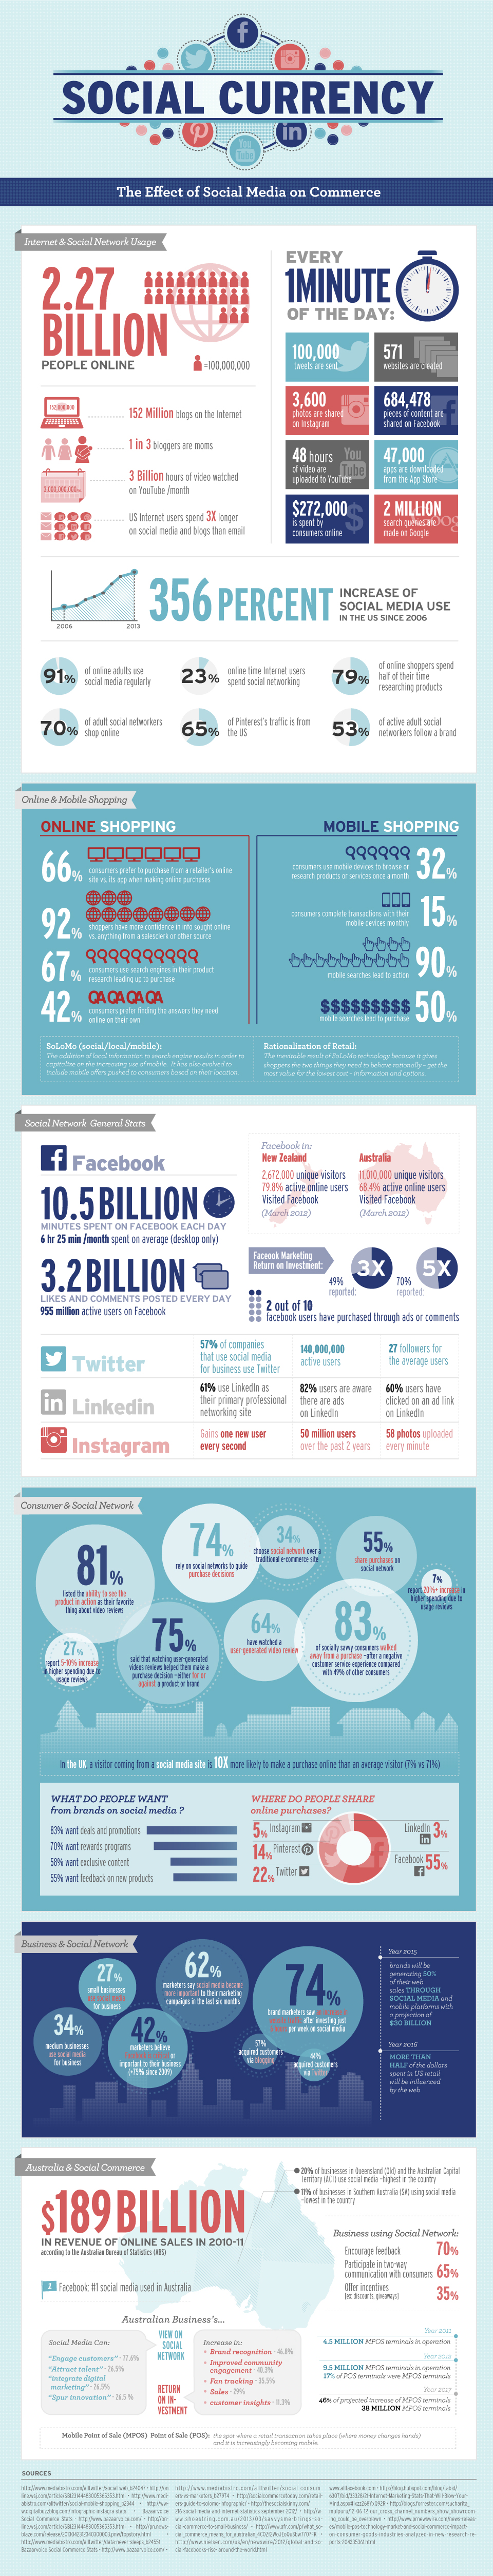 The Rise of Social Commerce